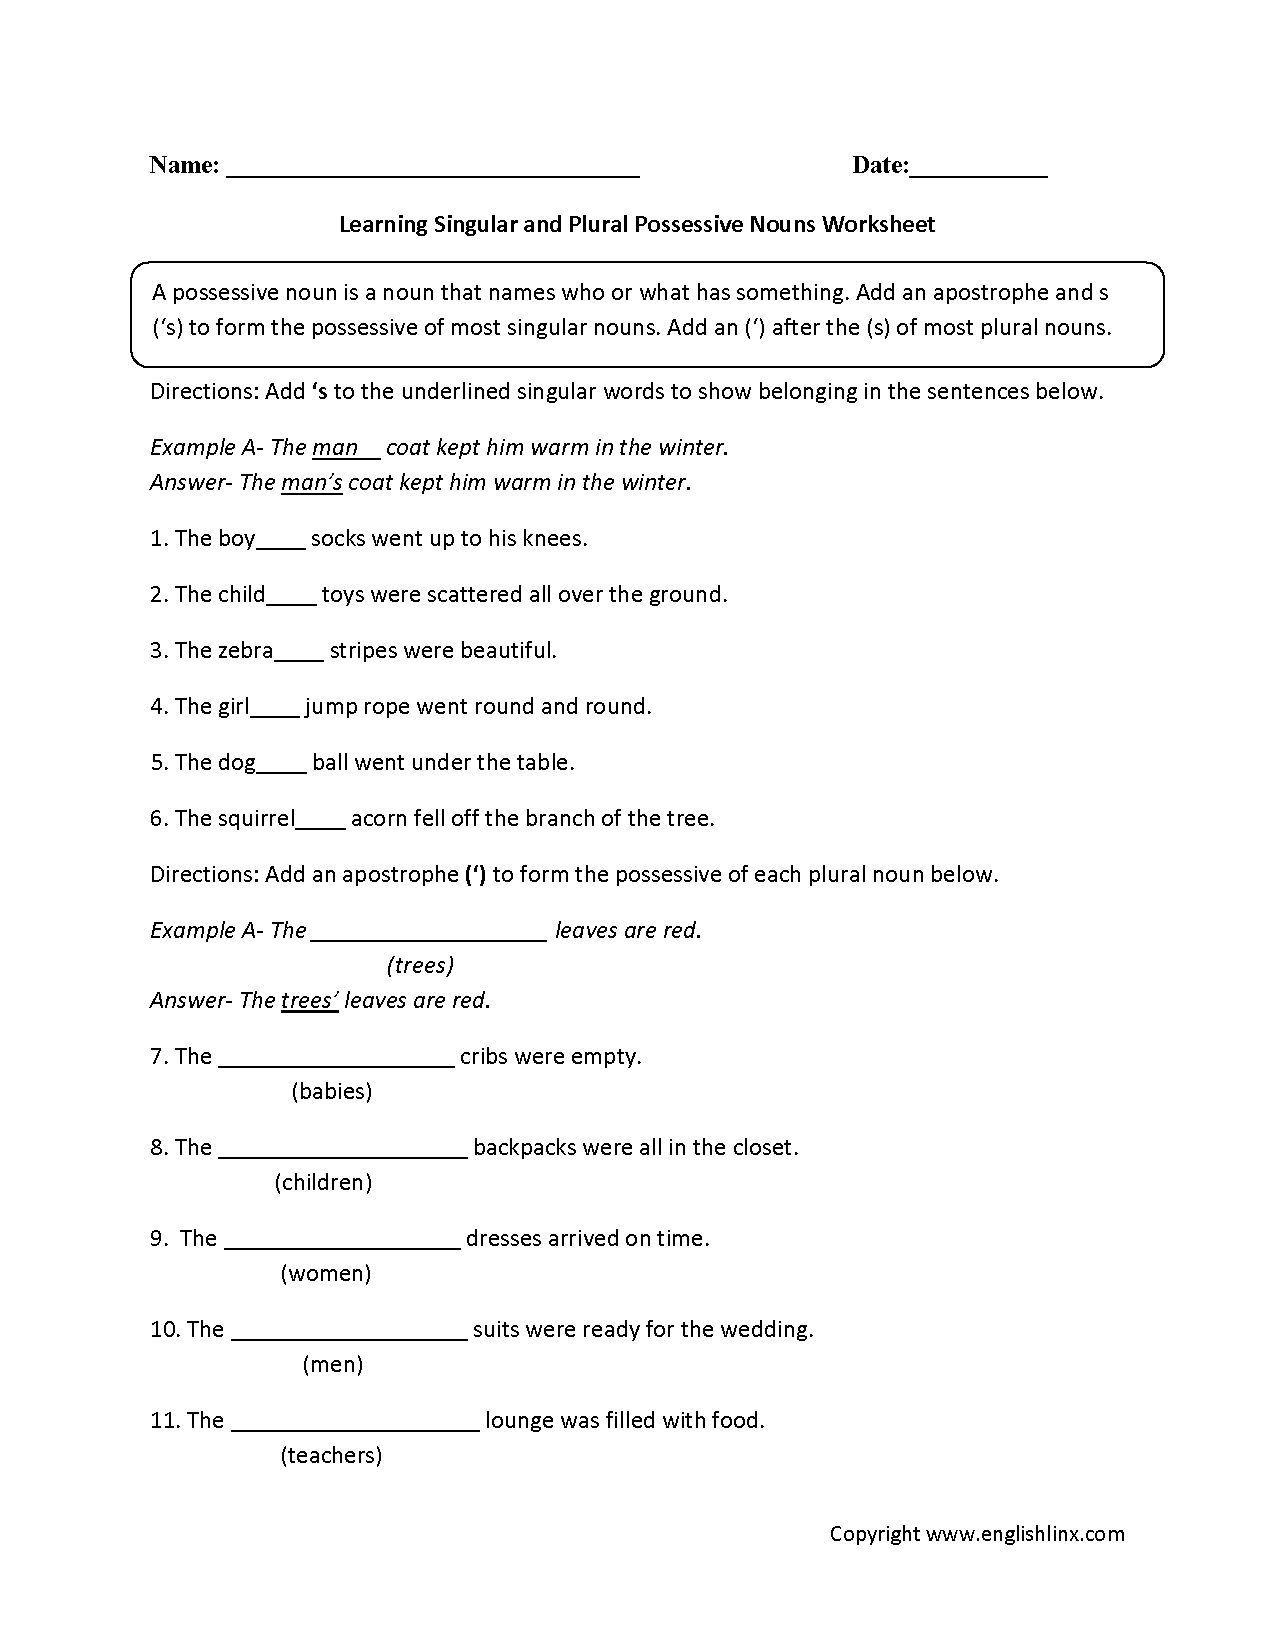 Learning Singular And Plural Possessive Nouns Worksheet